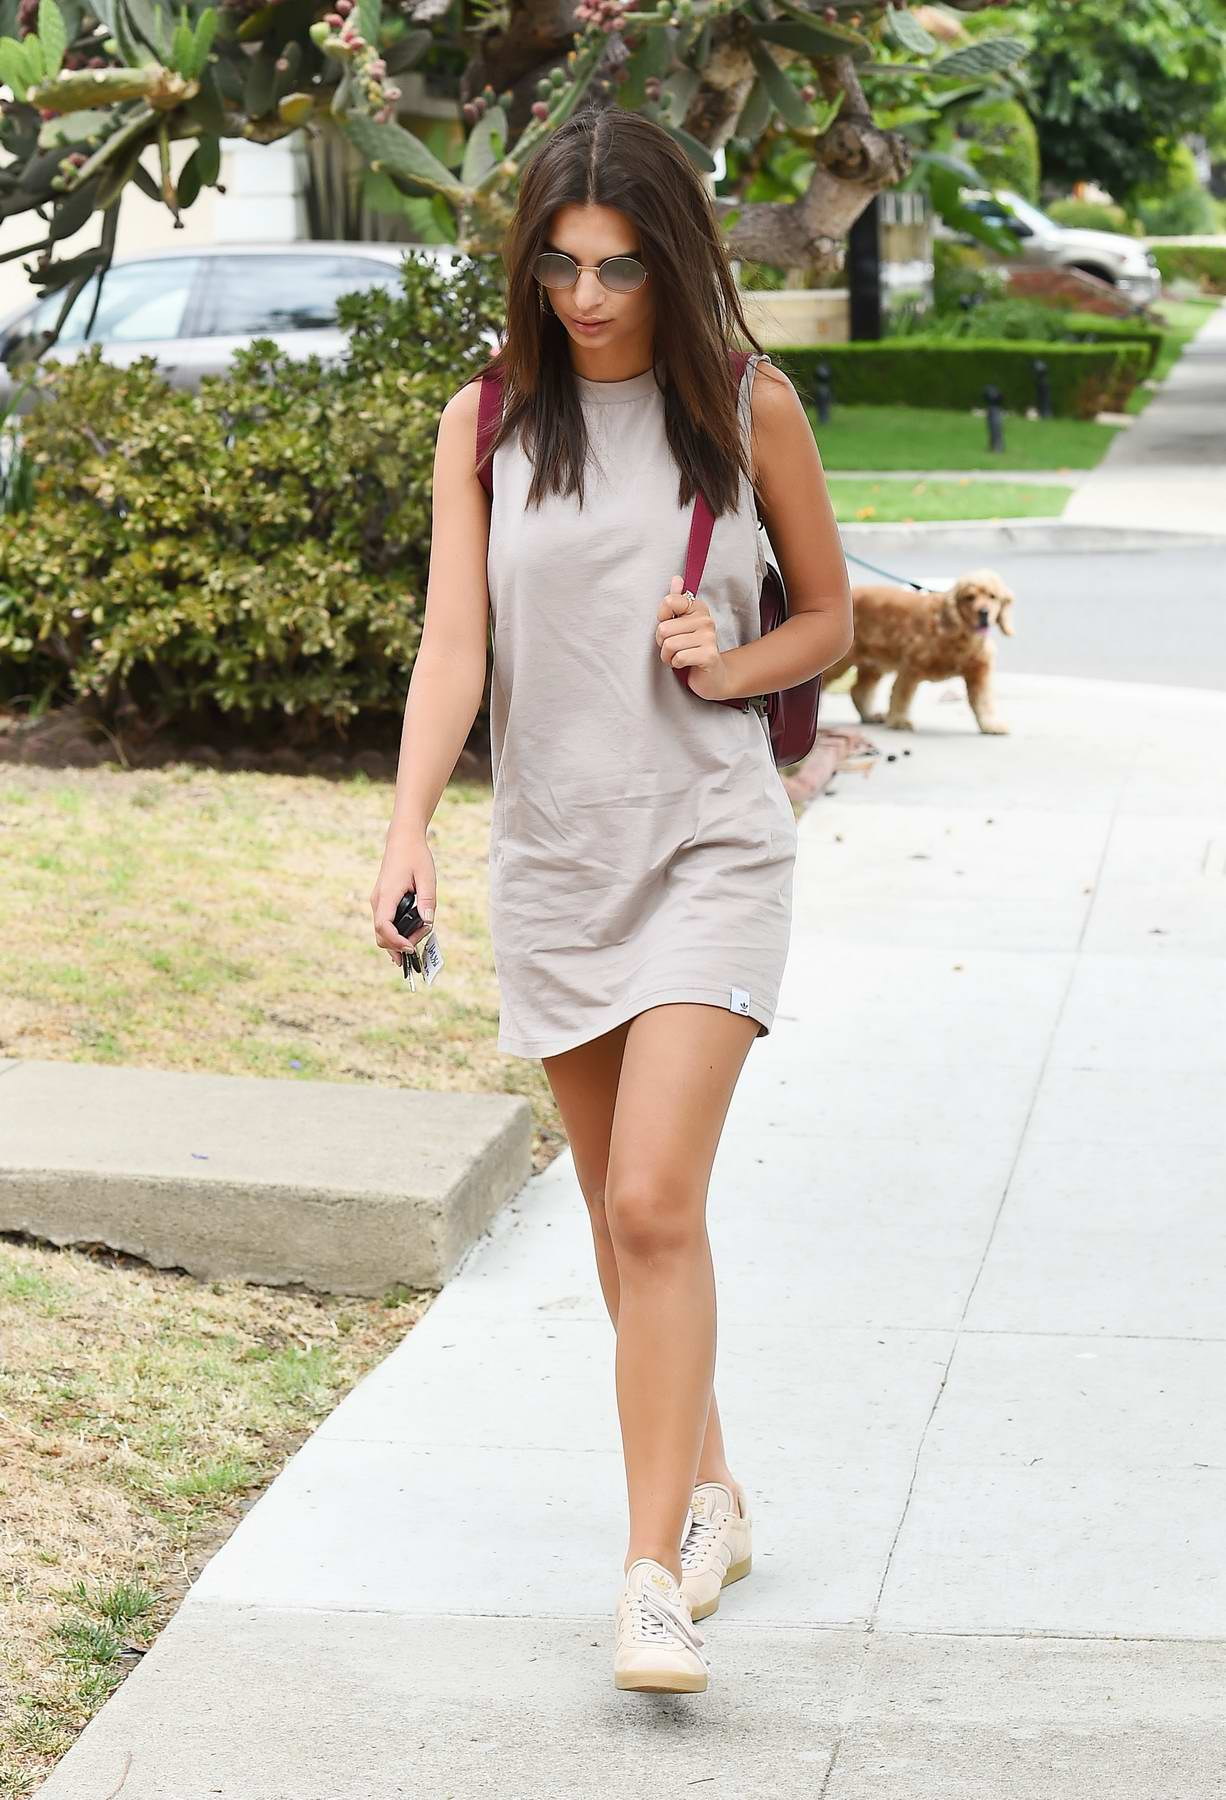 Emily Ratajkowski out and about in Los Angeles